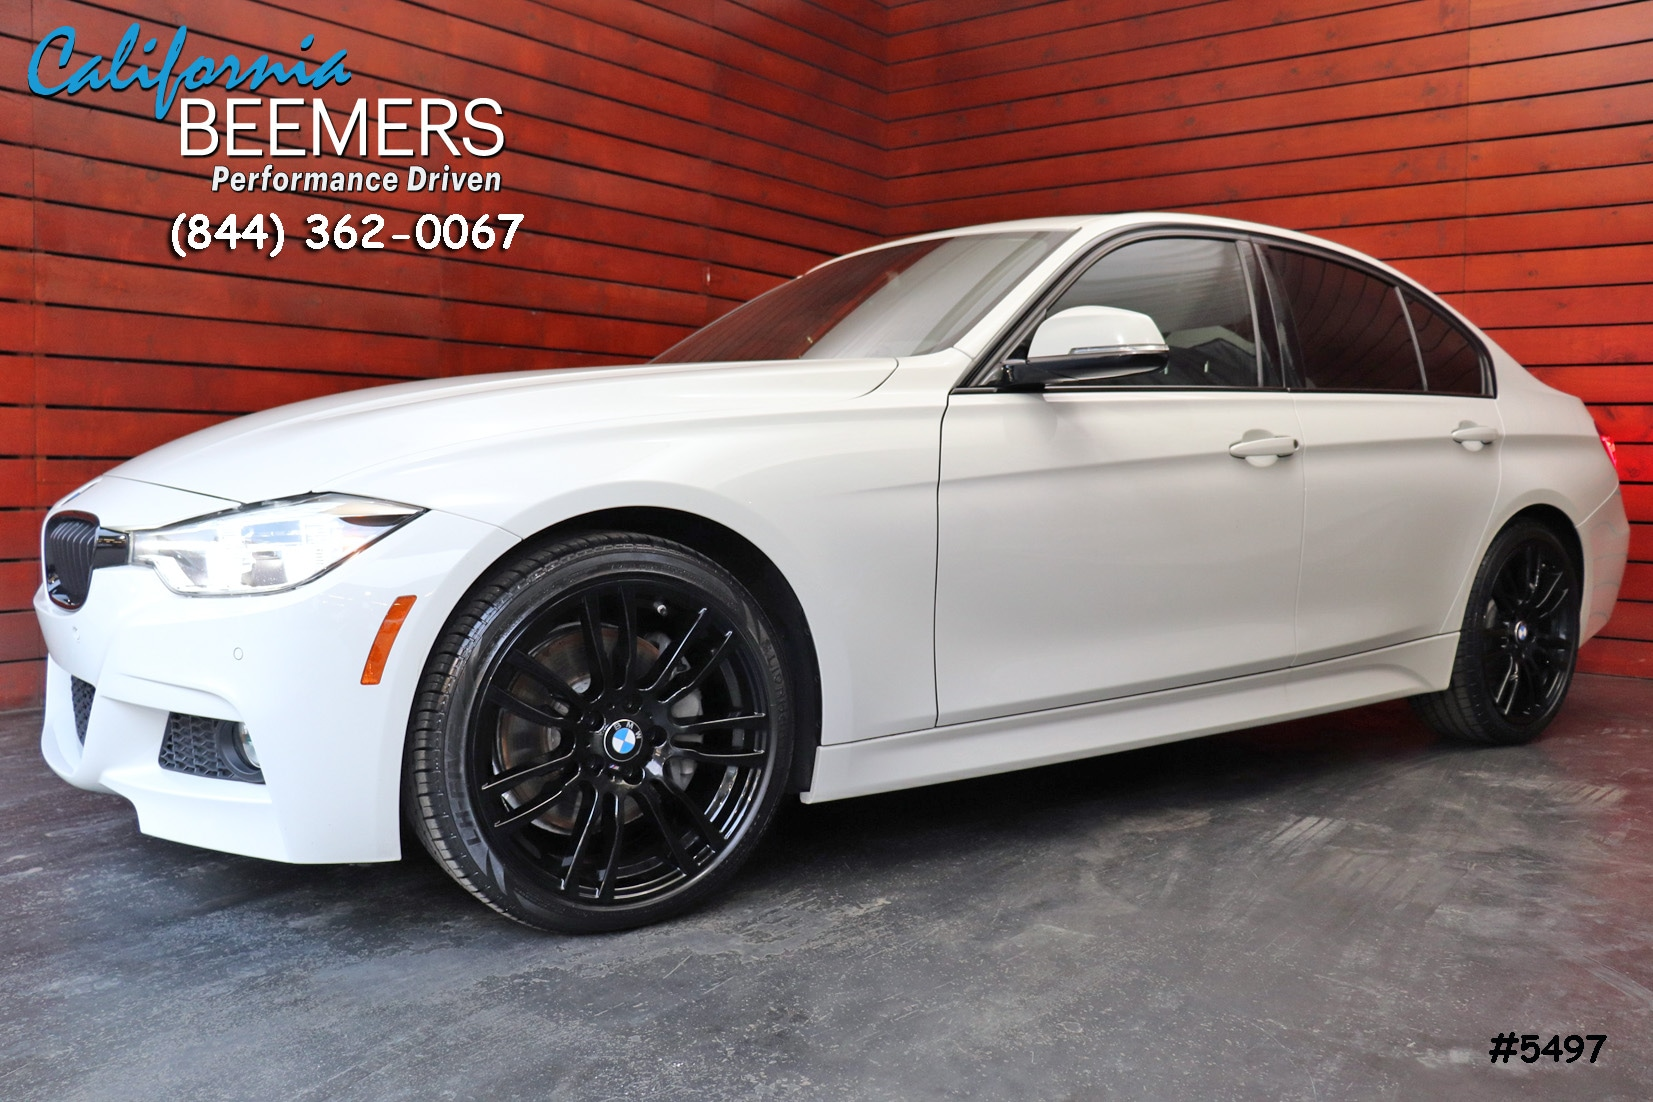 Used BMW's in Orange County | CA Beemers in Costa Mesa